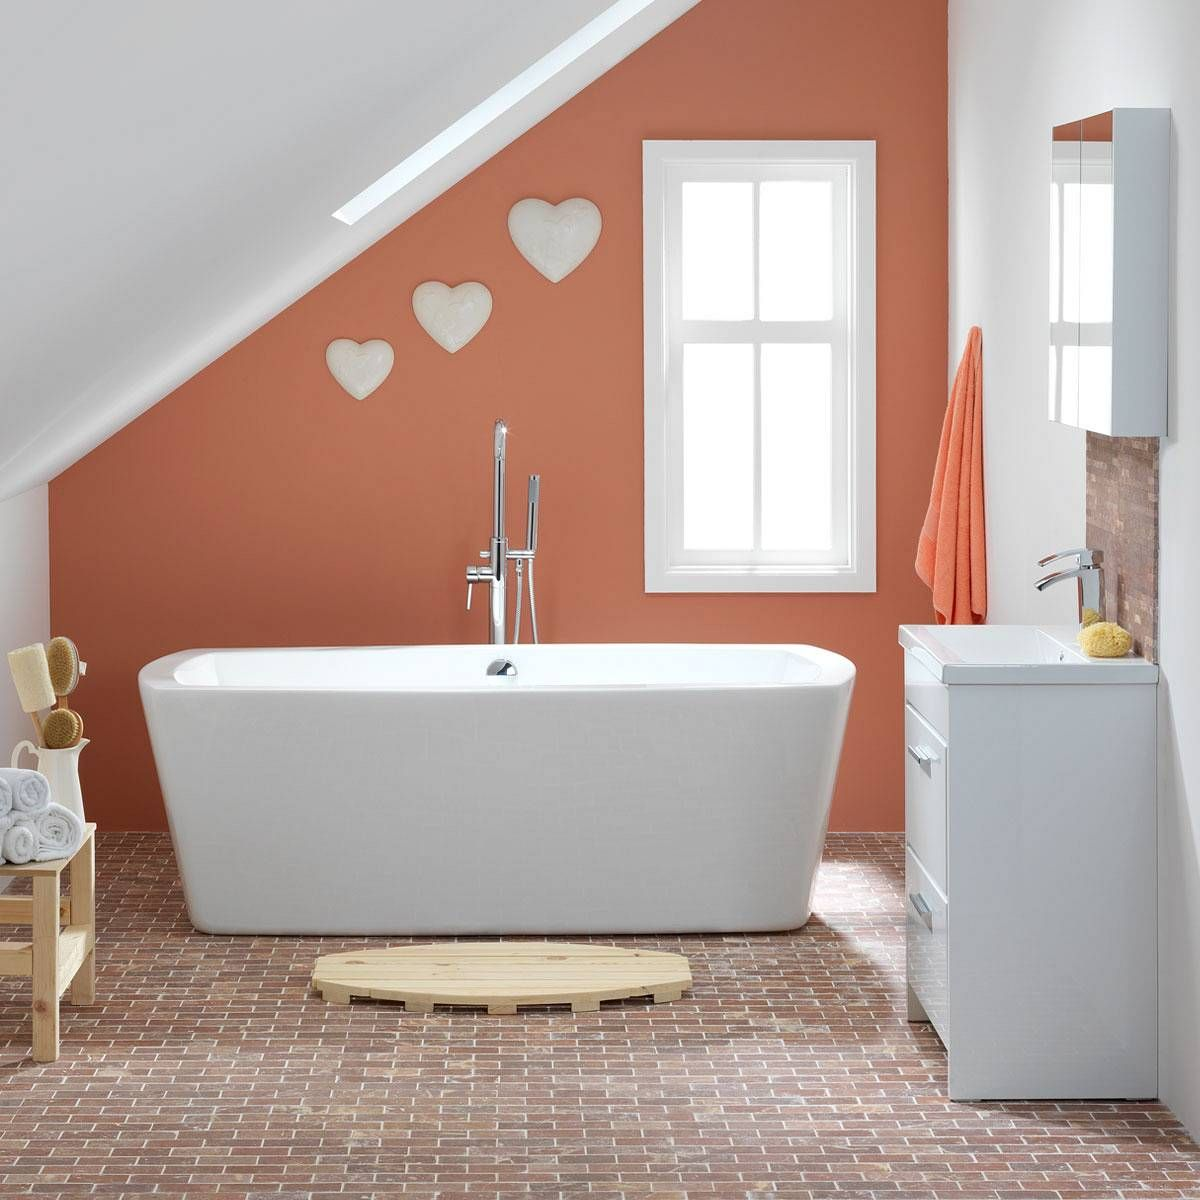 Cute Wall Hearts  Bedroom Ideas  Pinterest  Roll Top Bath Inspiration Cute Small Bathroom Ideas Design Ideas